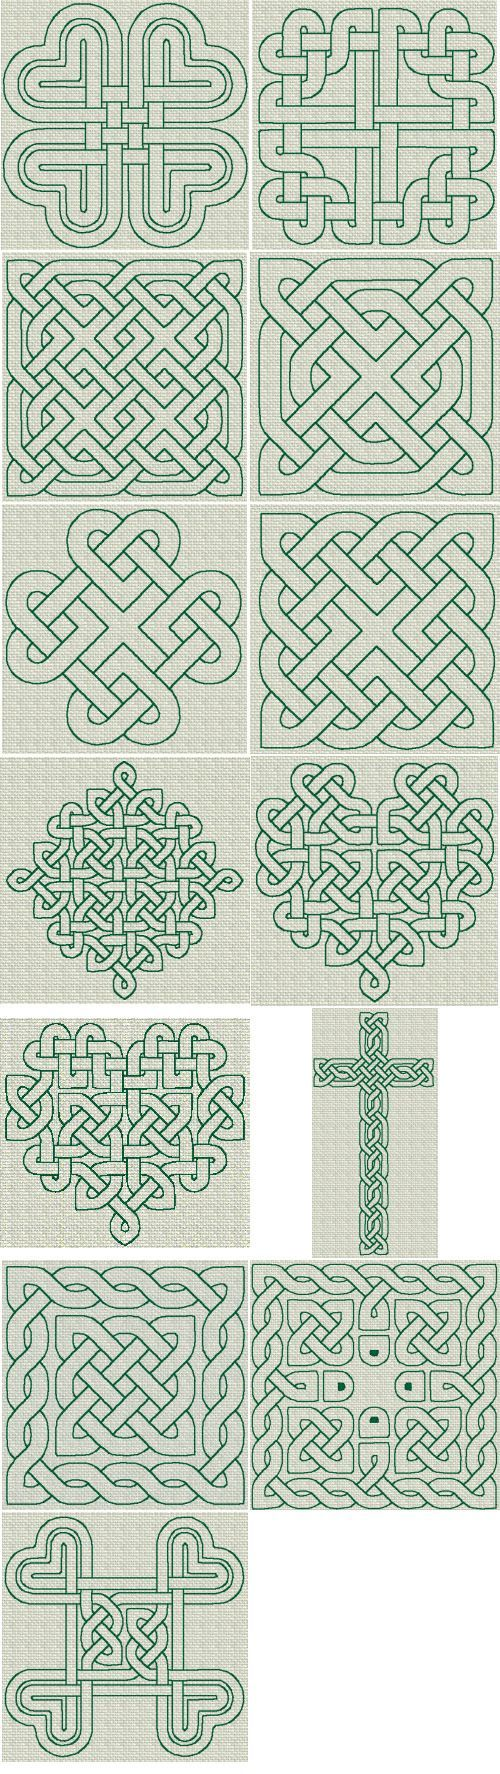 Celtic Knotwork RW Series 01 [Series 01] – $10.50 : The Country Needle Embroidery Designs®, Offers high quality, manually punched machine embroidery designs at affordable prices. Instant downloads available. Where quality designs and customer service are